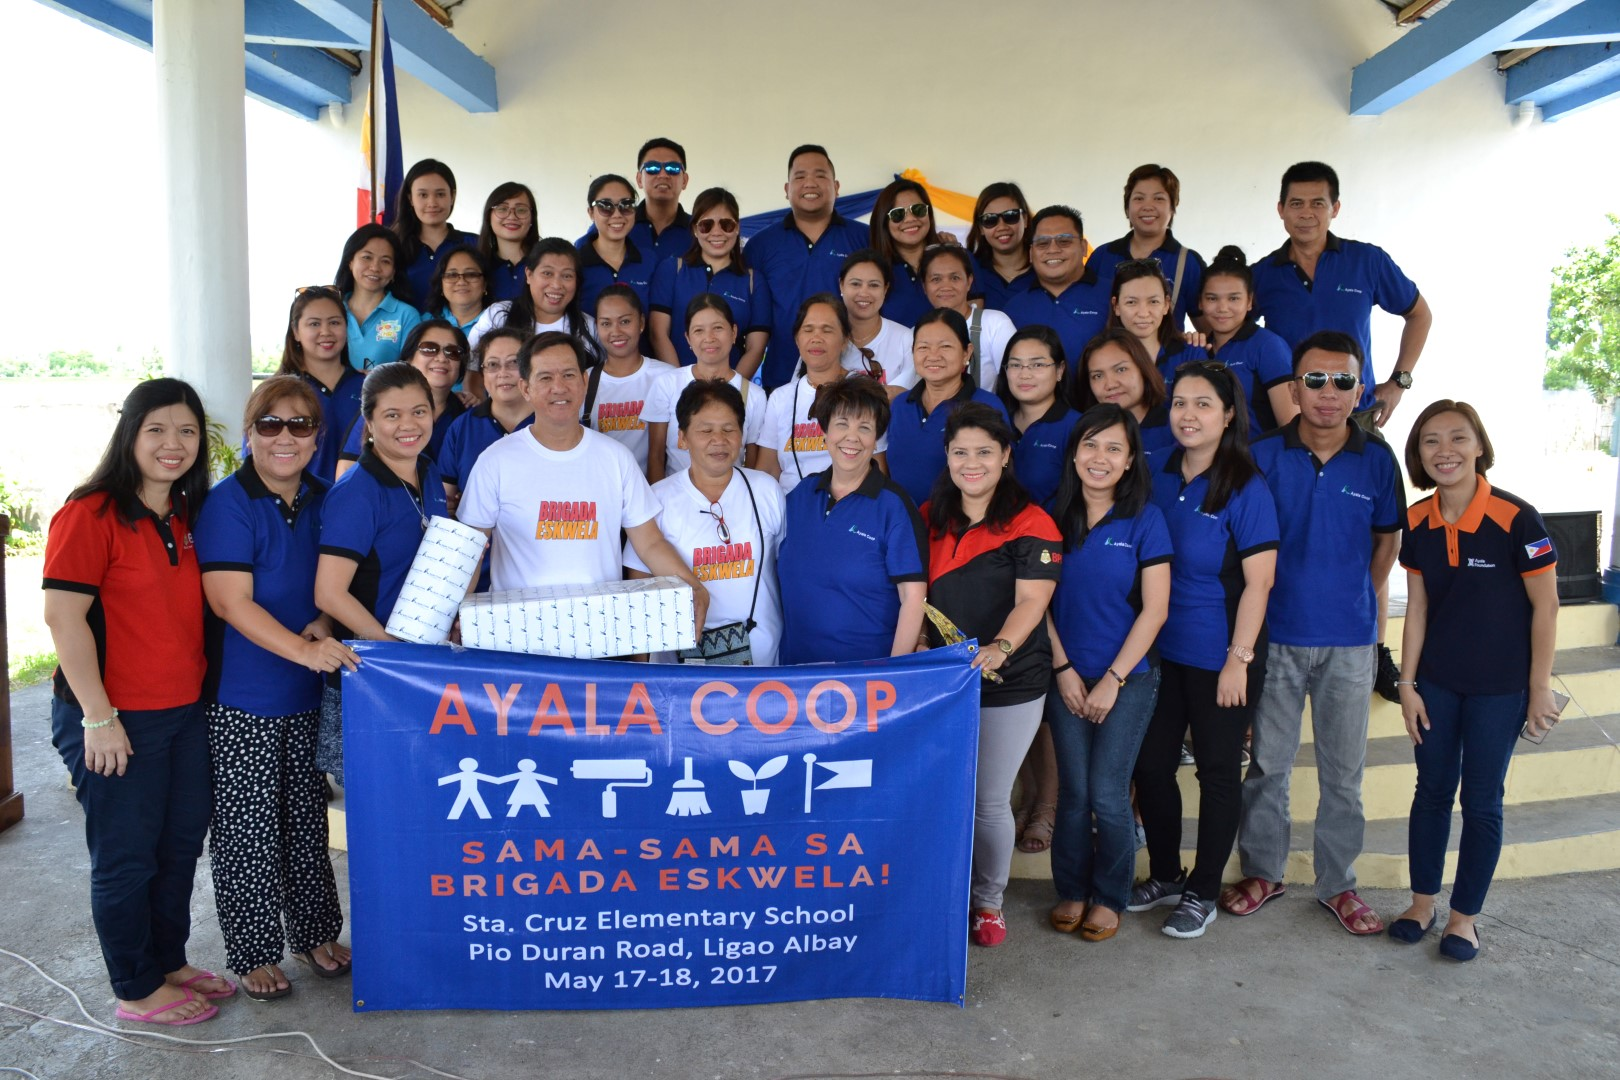 The Coop contingent led by General Manager Dina Orosa (front row, sixth from right) is shown with Sta. Cruz Elementary School officials led by its principal, Alan Alconera (fourth from left), after the welcome program for the Brigada Eskwela project at the school.